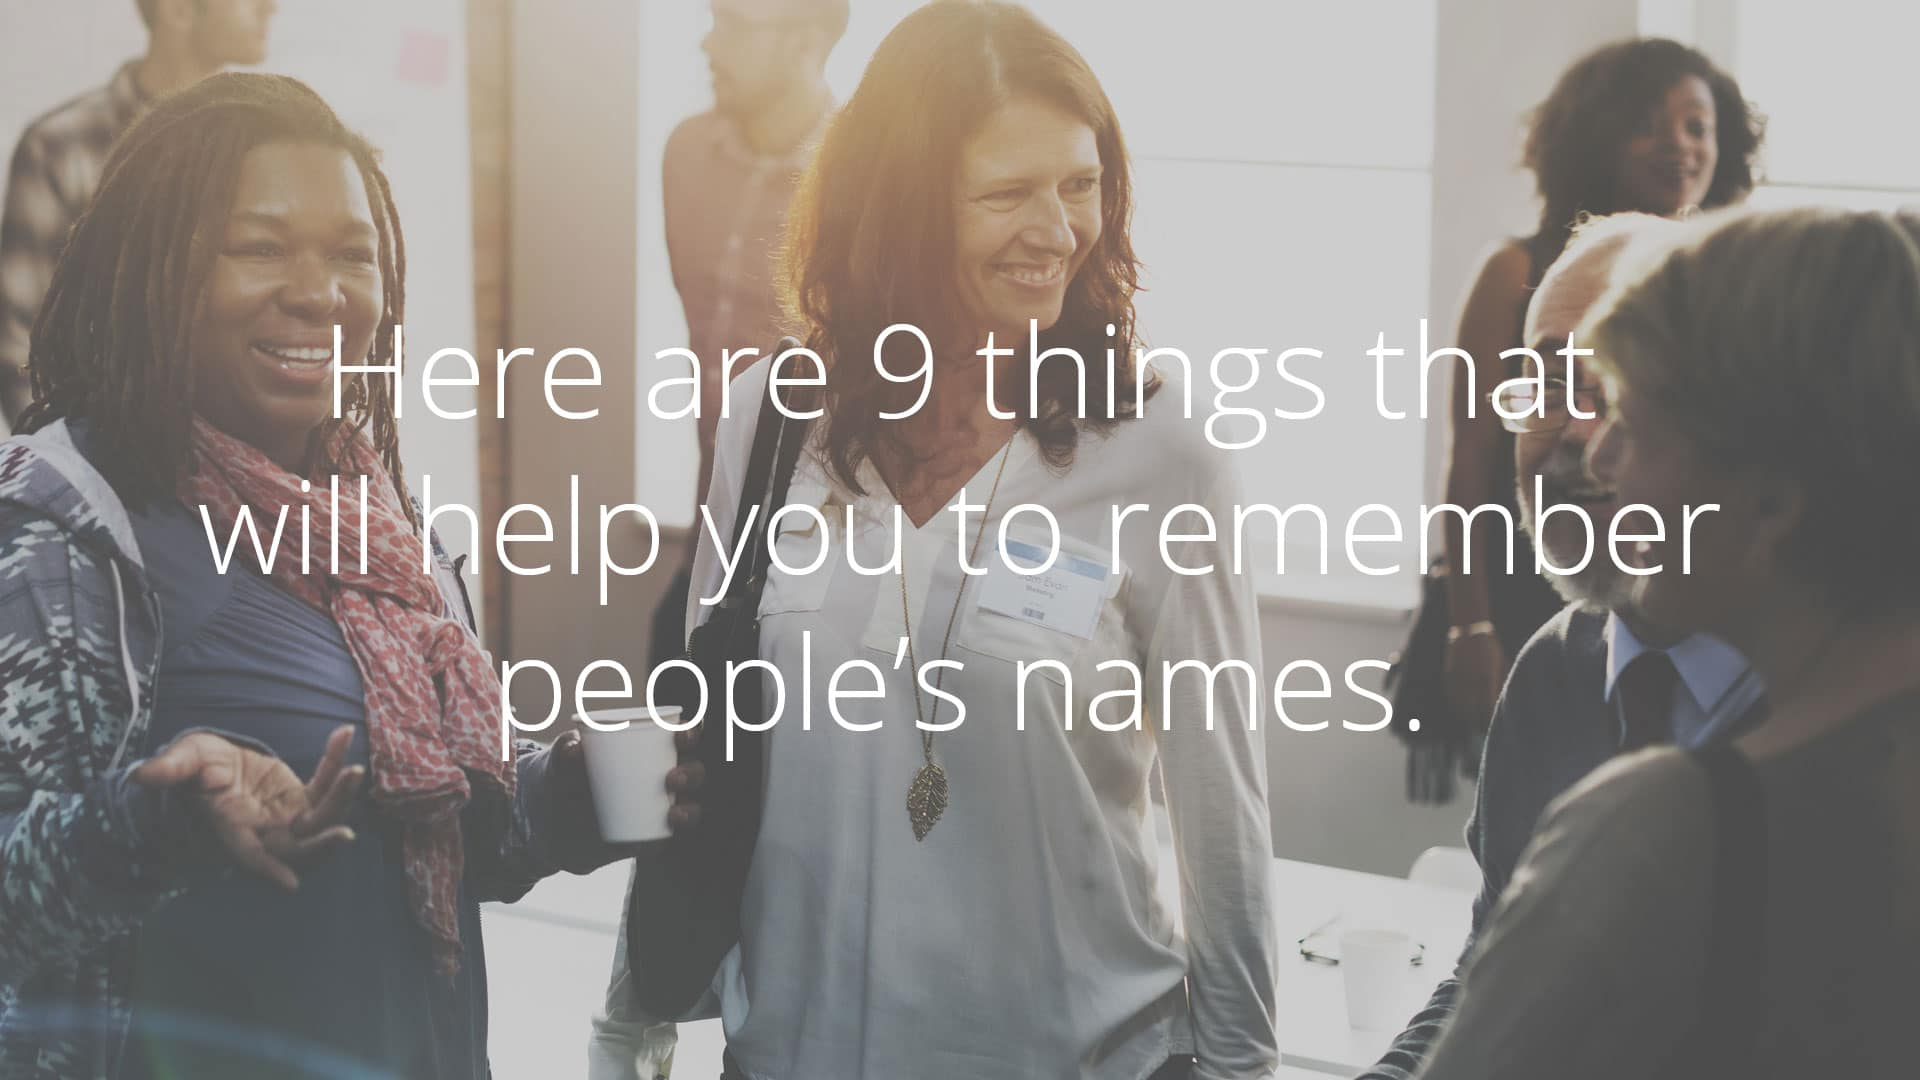 How to remember people's names and pronounce them correctly